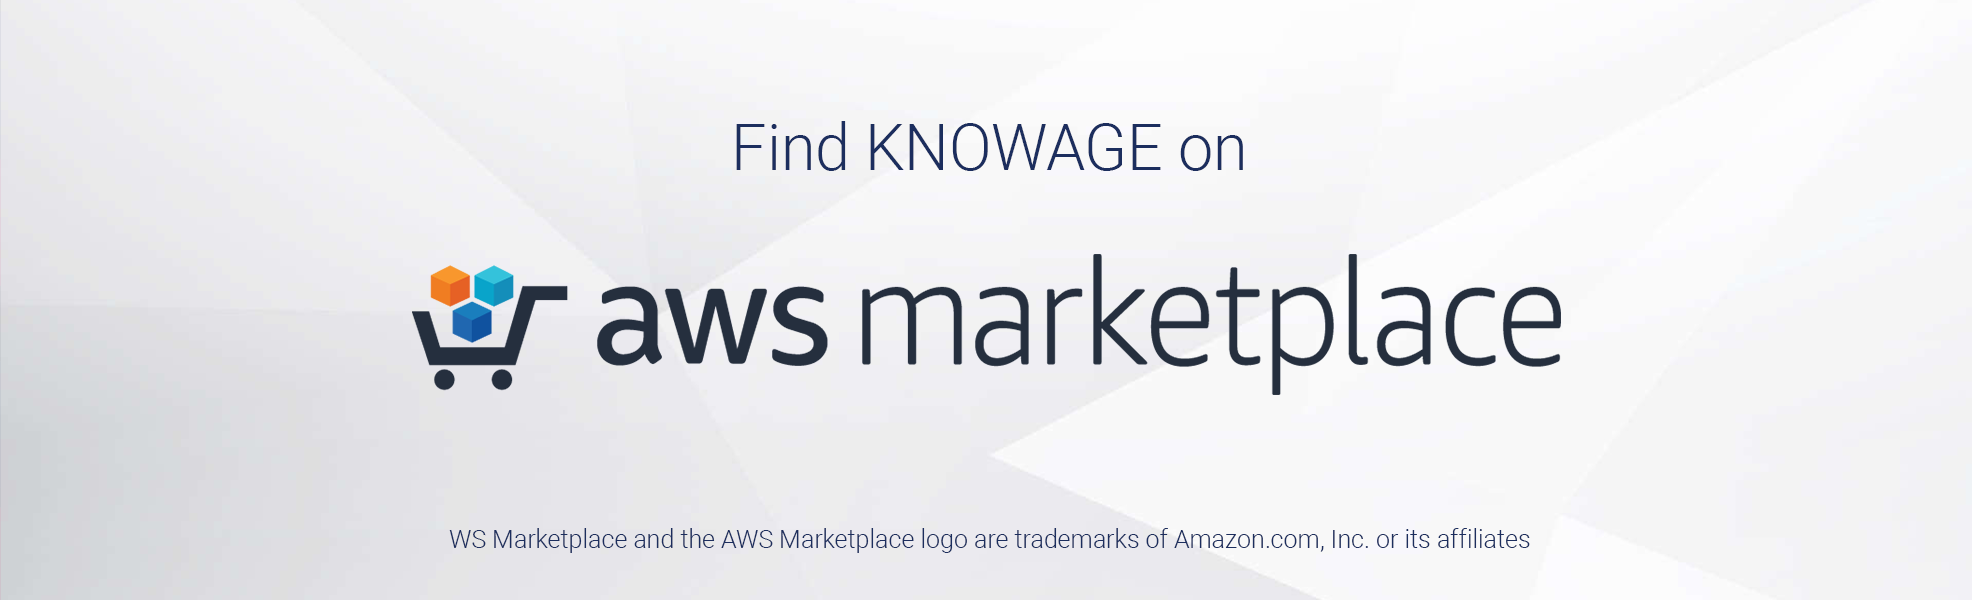 AWS_revolution_slider